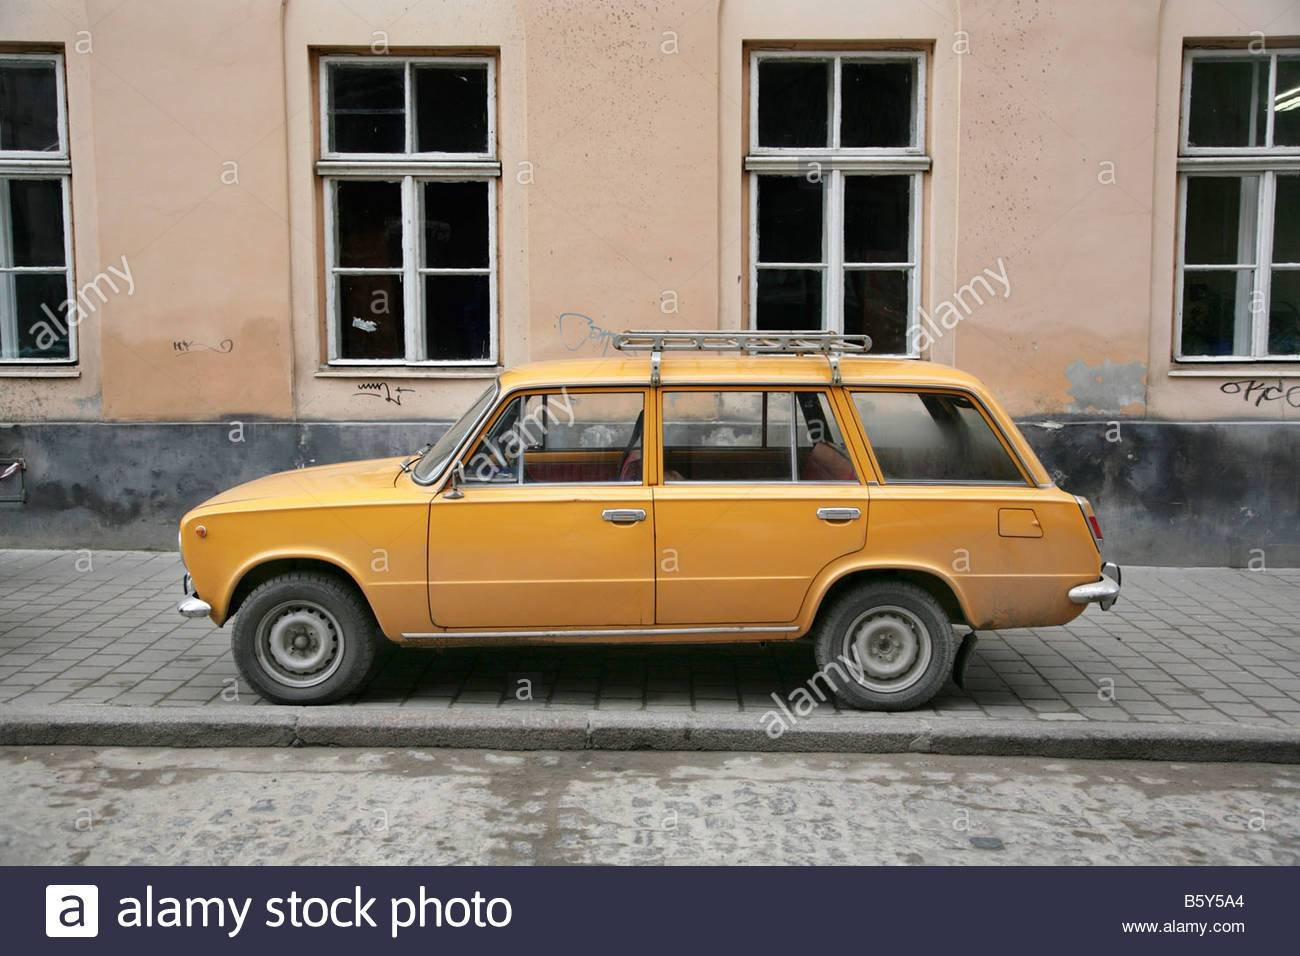 New Old D*Rty Orange Lada Estate Car In The Ukraine Stock On This Month